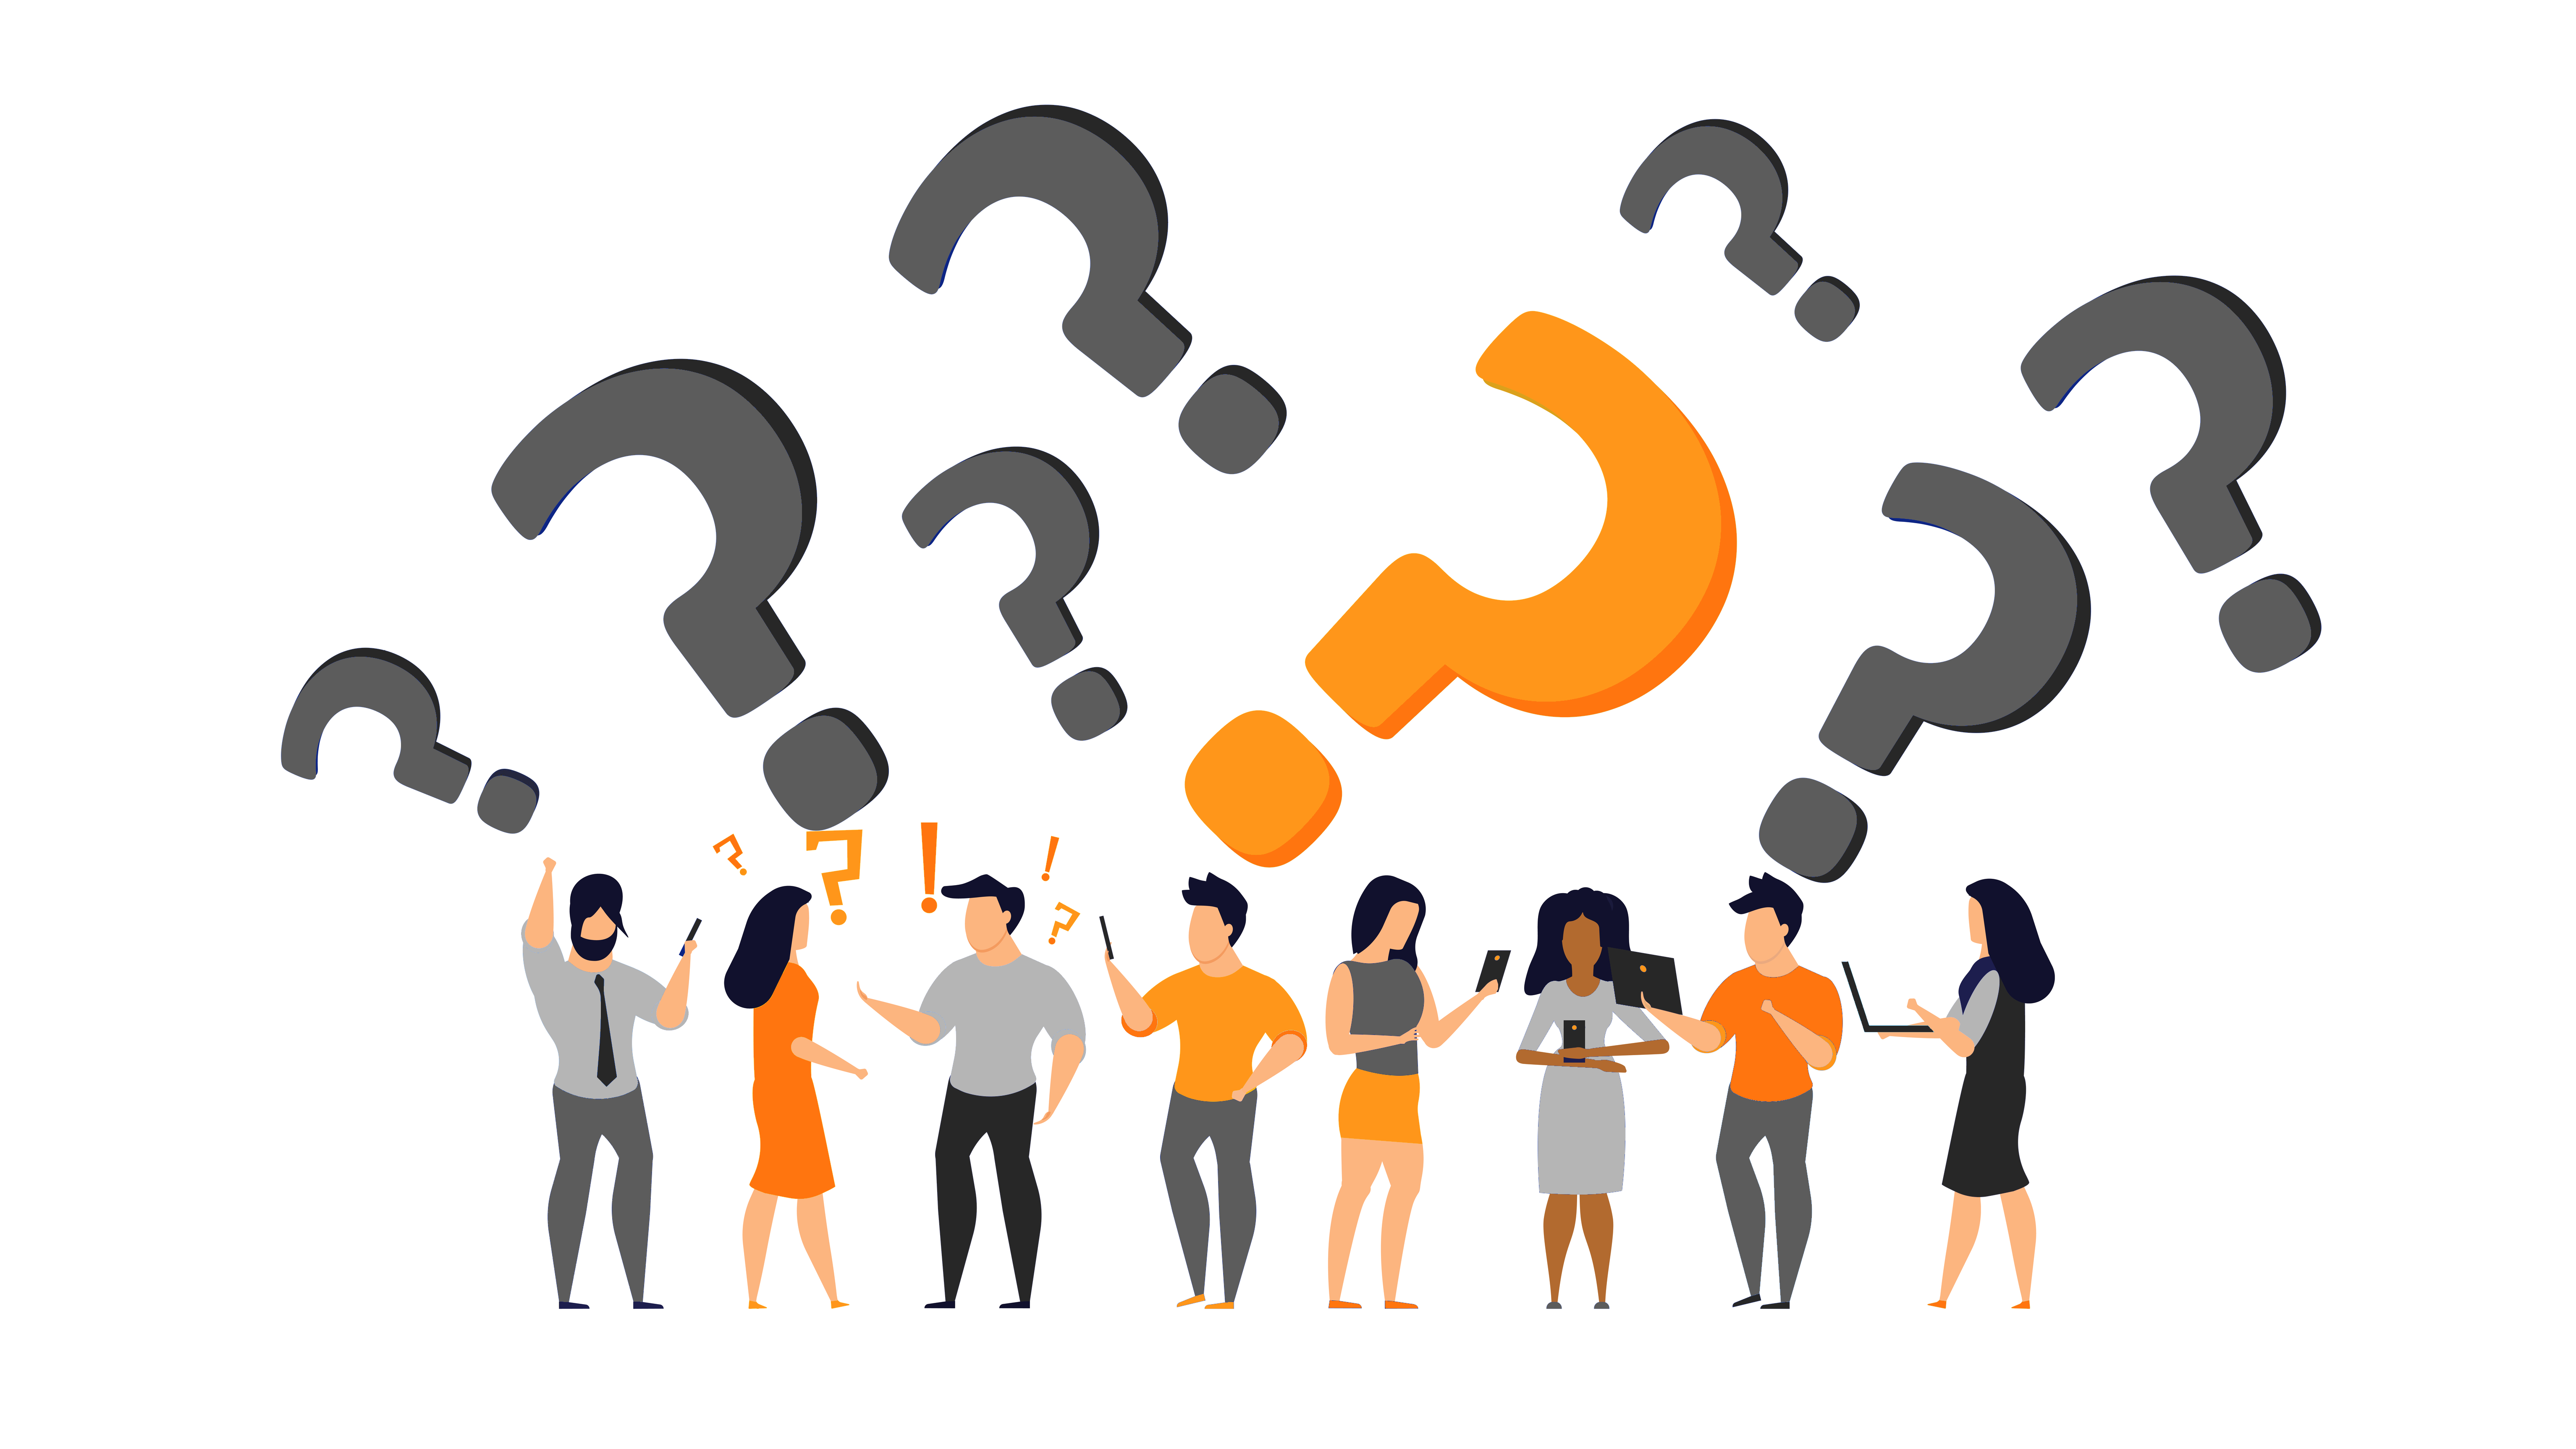 multiple grey and orange questionmarks with confused people underneath